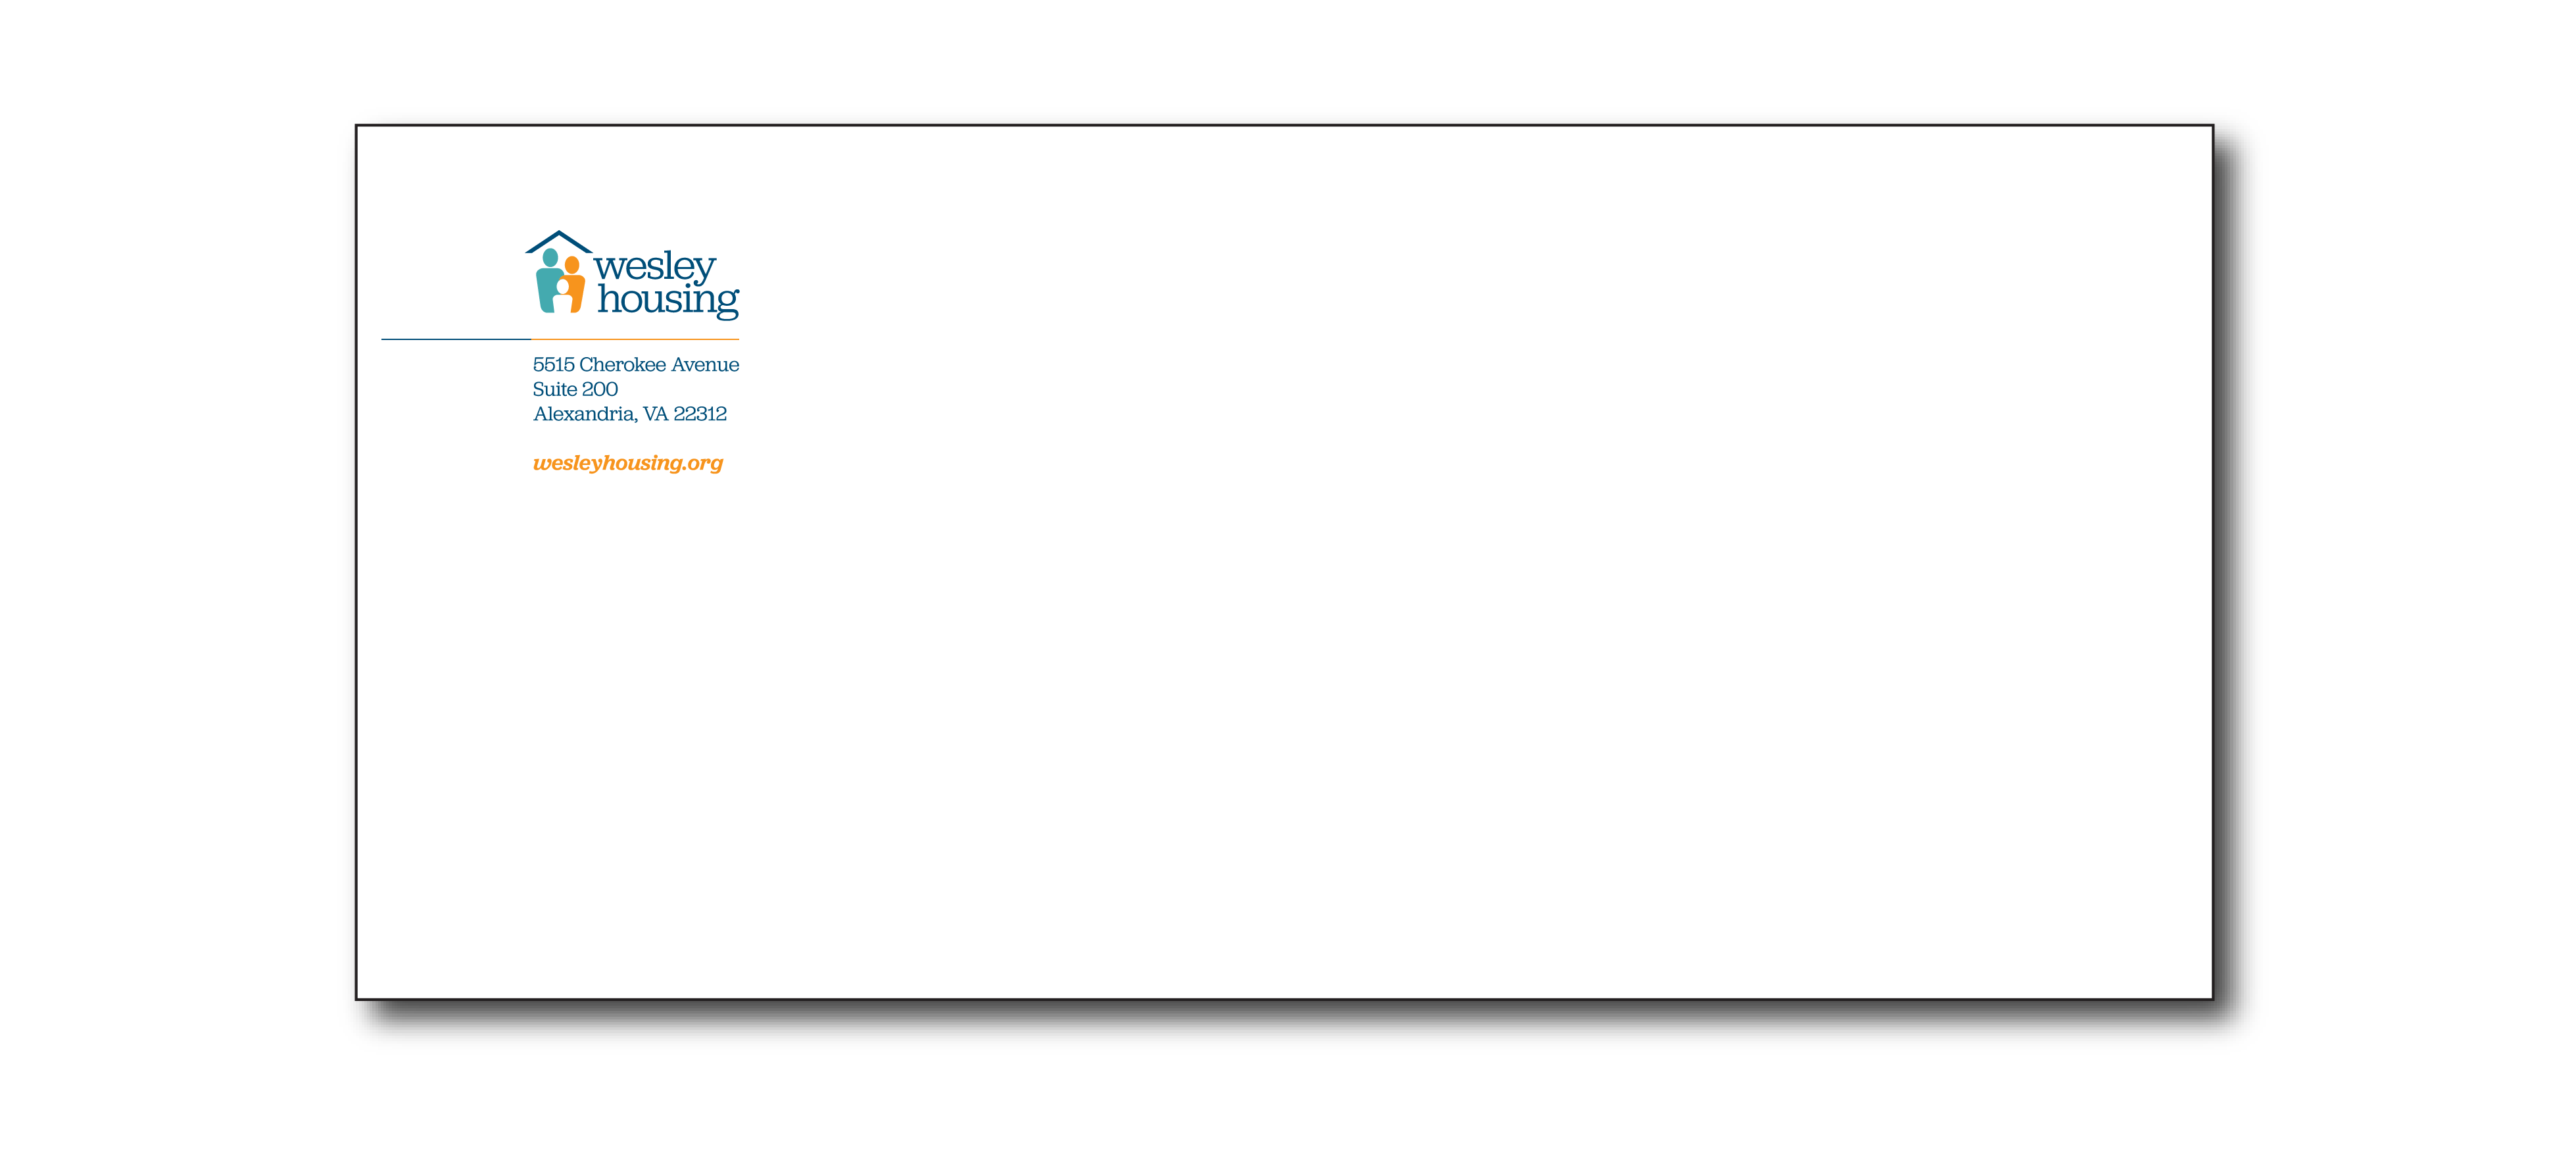 envelope template for Wesley client